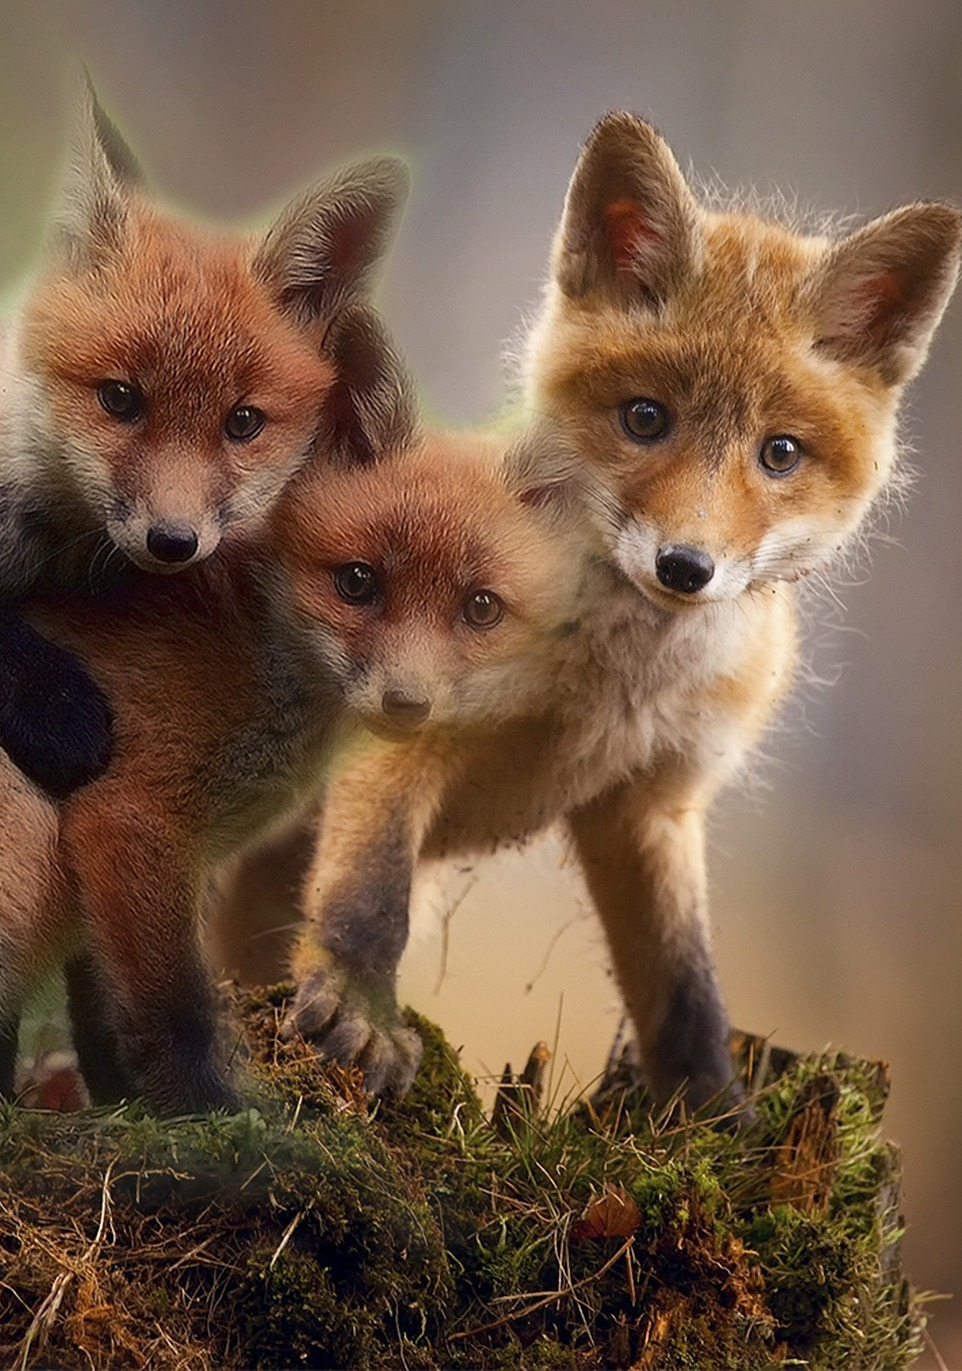 Cute red fox cubs.